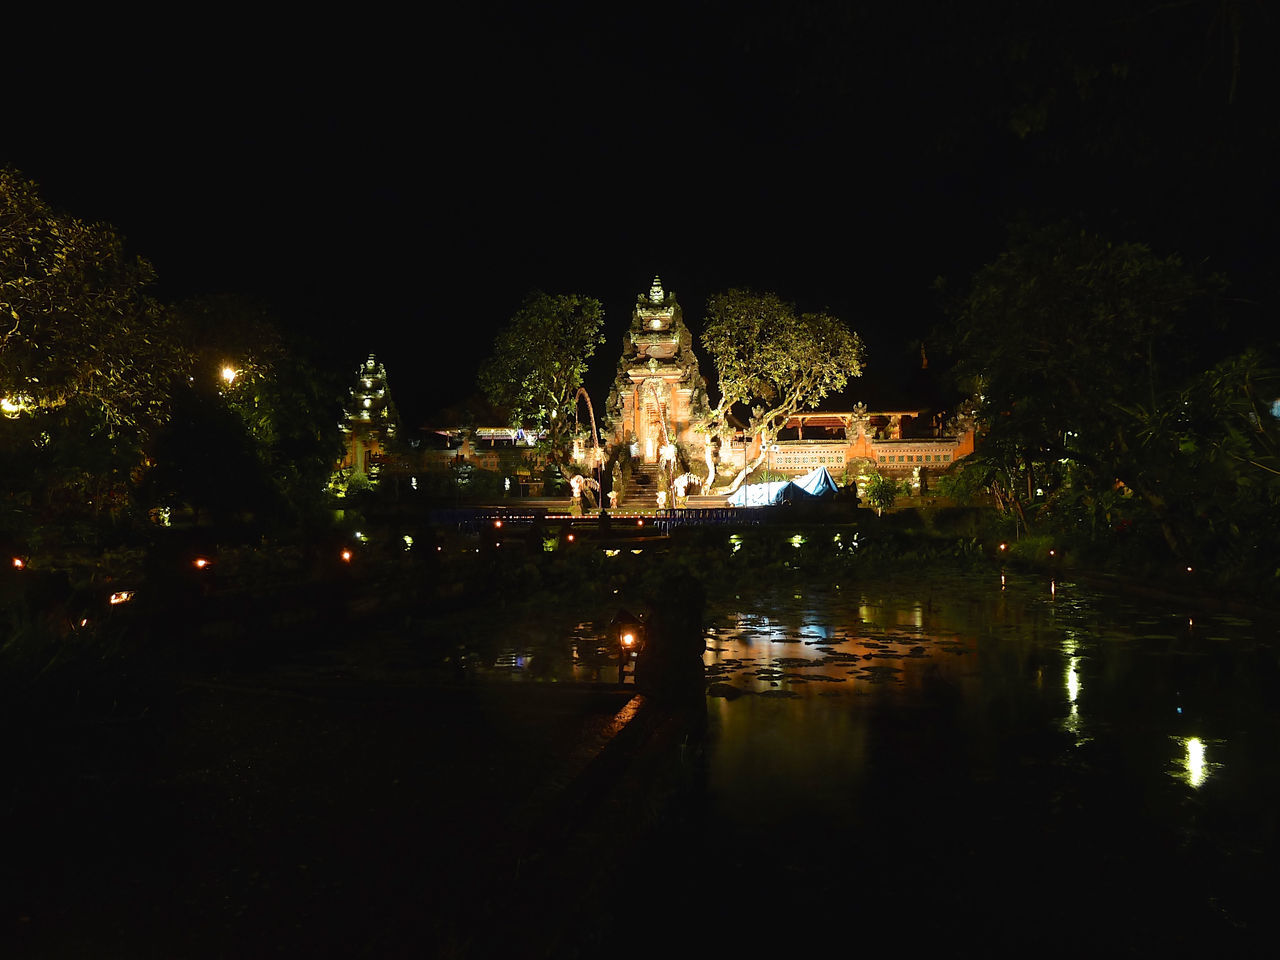 Architecture Building Exterior City Dance Show Hinduism Illuminated Nature Night No People Outdoors Pond Prayer Reflection Religion Sky Temple Travel Destinations Tree Ubud Water